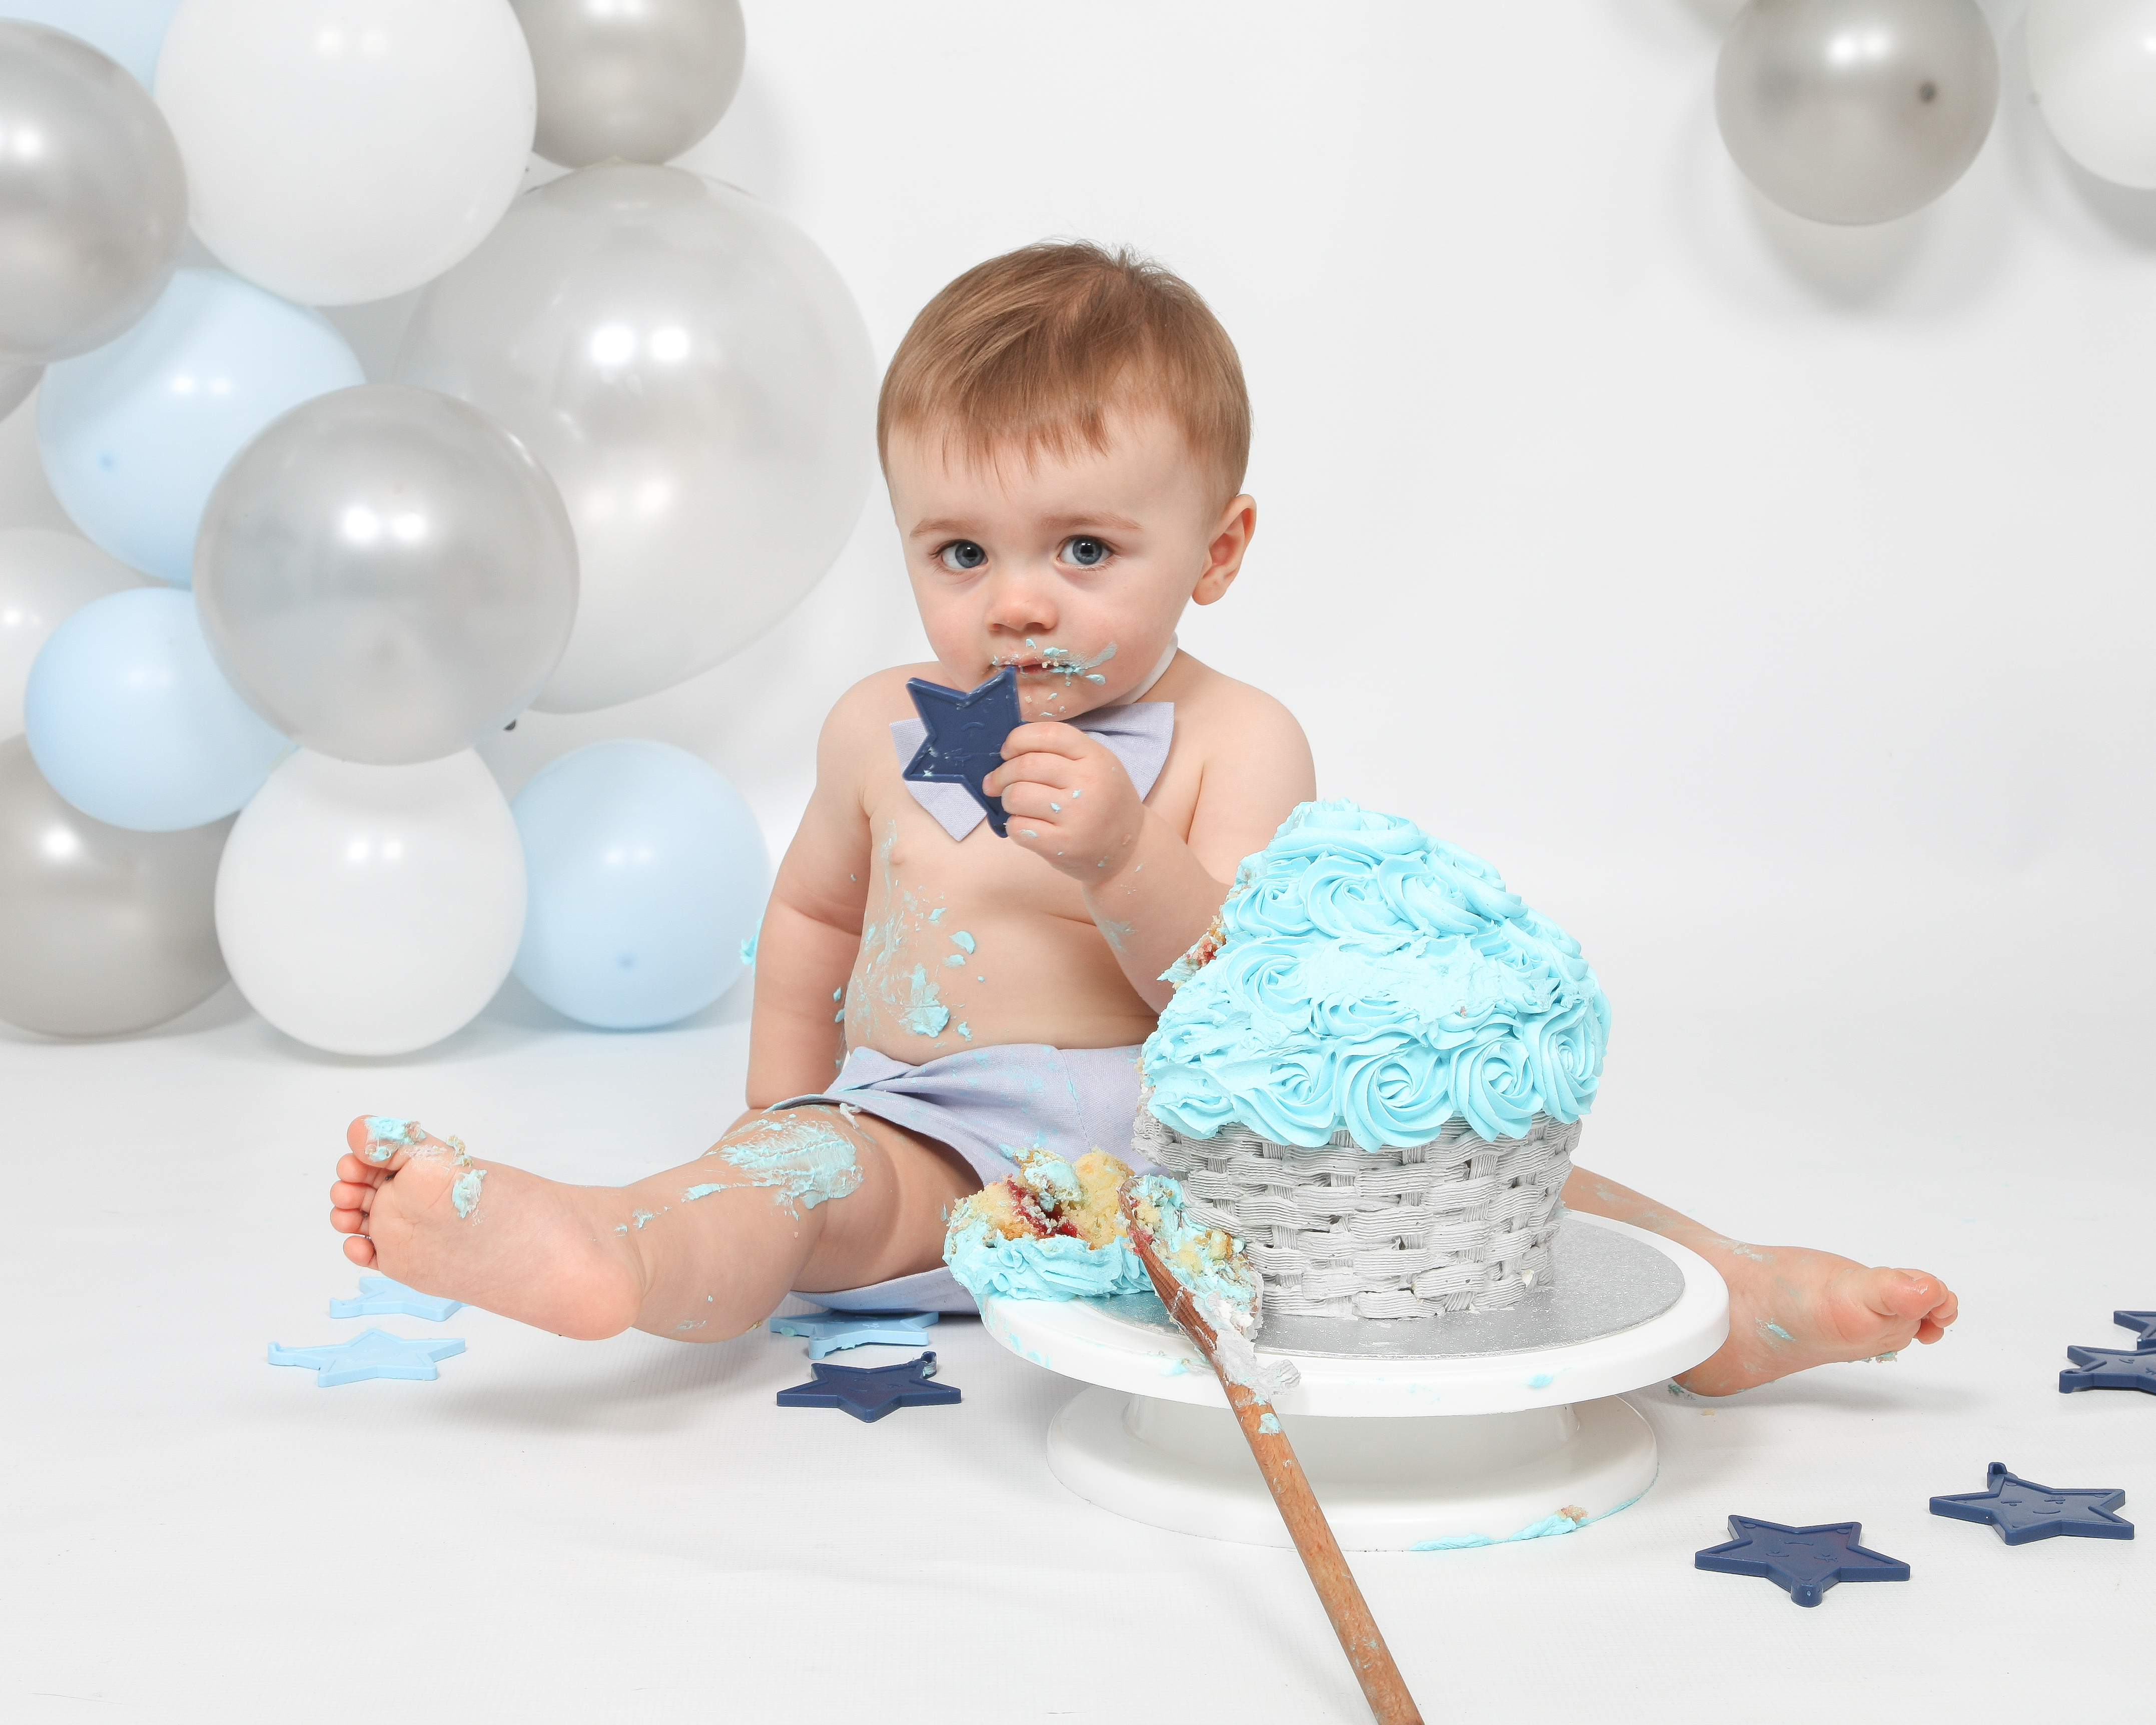 Grey and Blue Balloon Arch Cake Smash